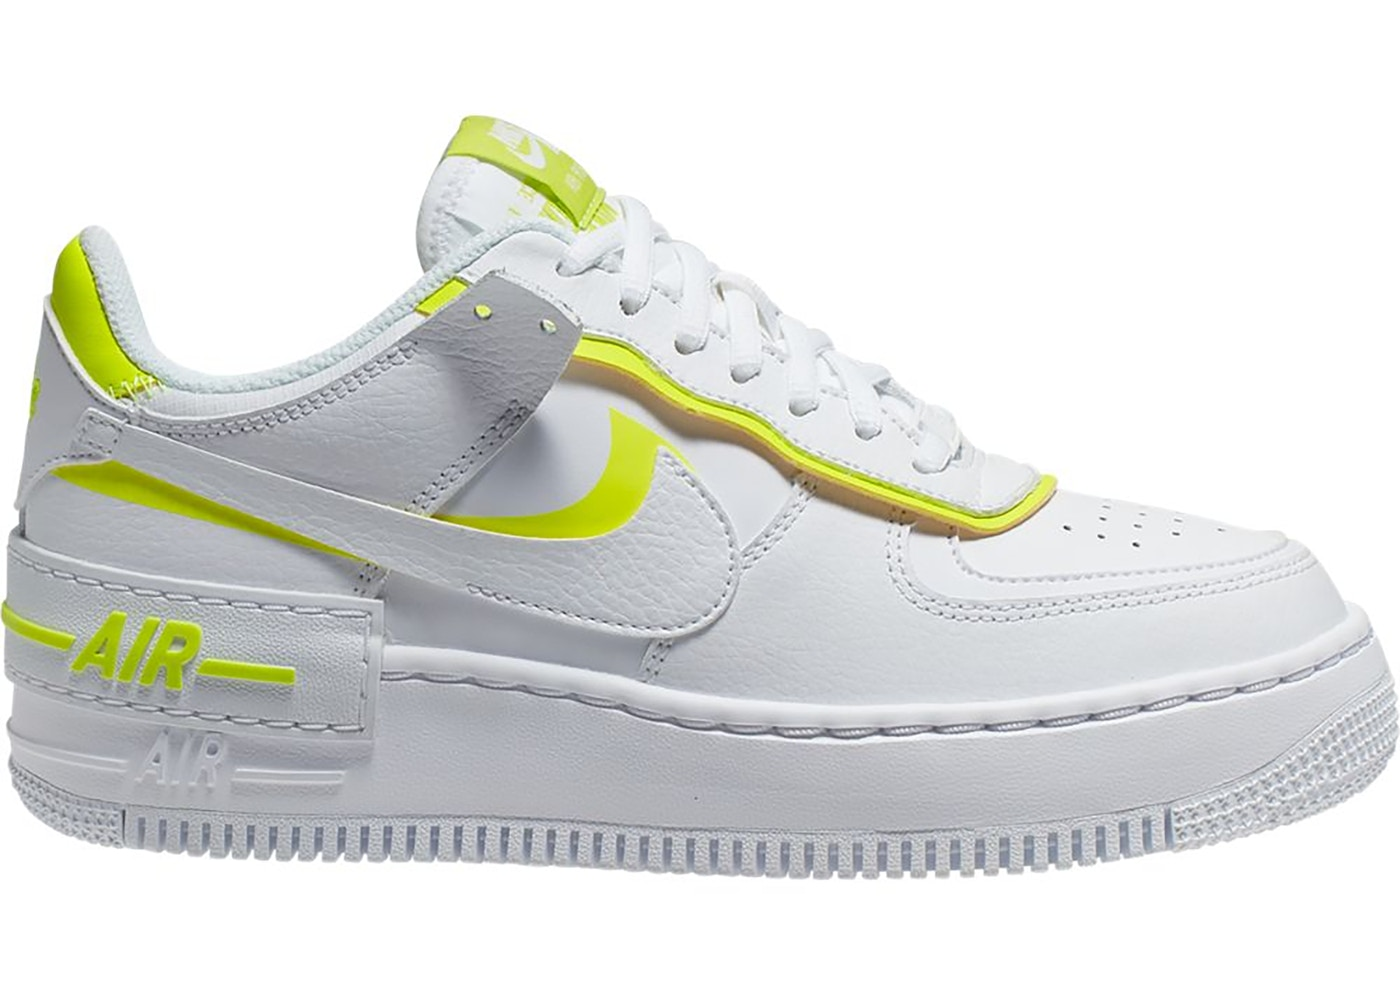 Nike Air Force 1 Shadow White Lemon W Ci0919 104 'lemon venom' coloured branding stands out on the white heel panel, with the iconic logo embroidered to match the colour of the tongue badge that's also finished with the classic. nike air force 1 shadow white lemon w